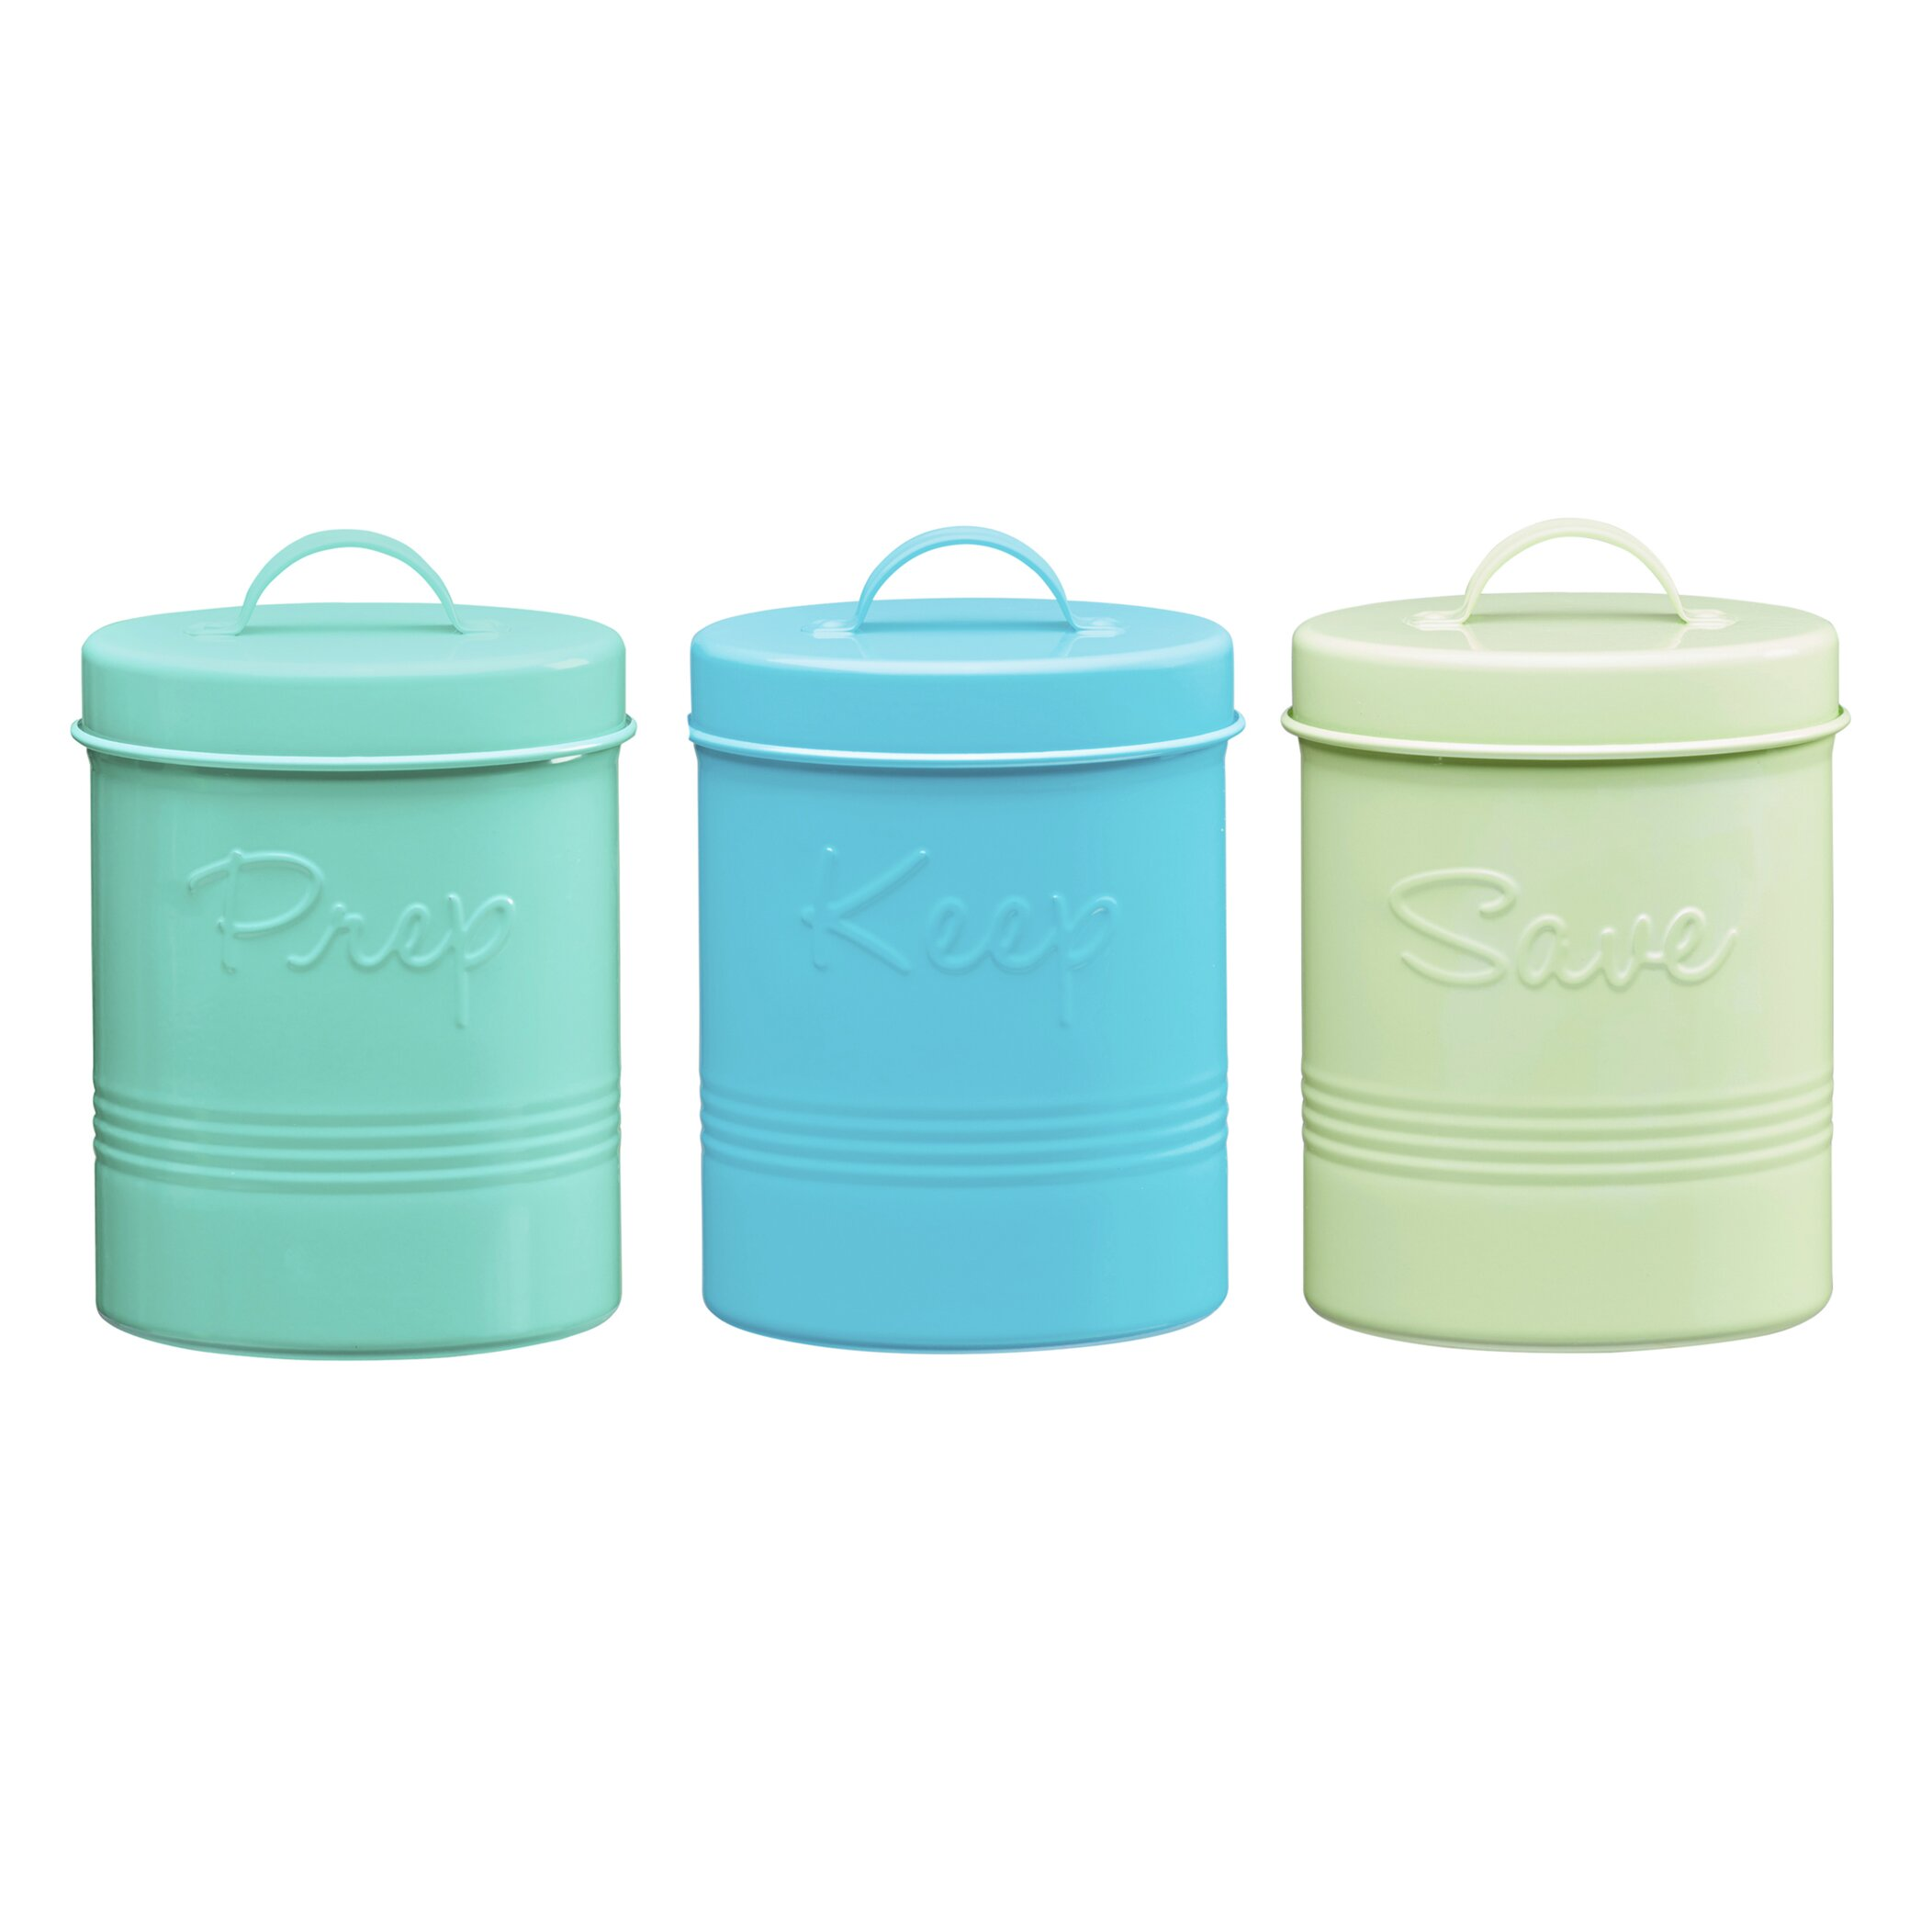 Retro Kitchen Canisters Glass Kitchen Canisters Cliff Kitchen